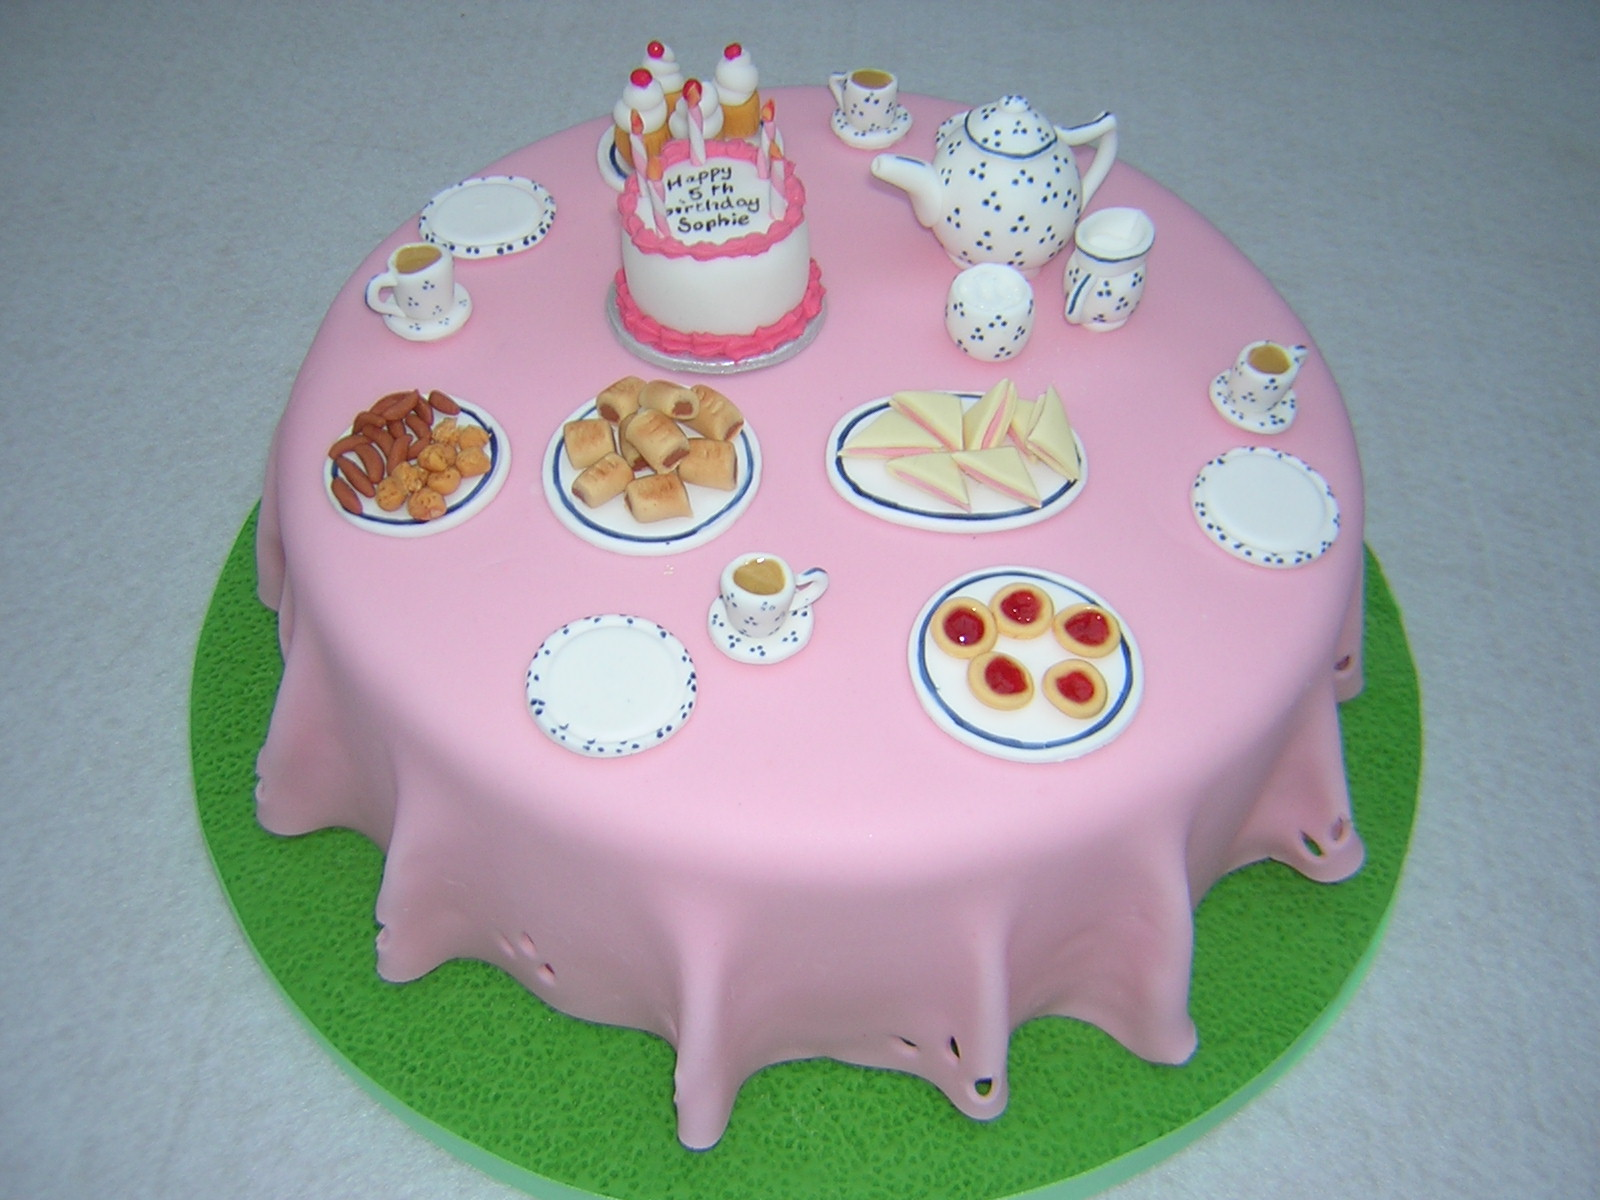 Tea Time Cakes - Julie s Creative CakesJulie s Creative Cakes